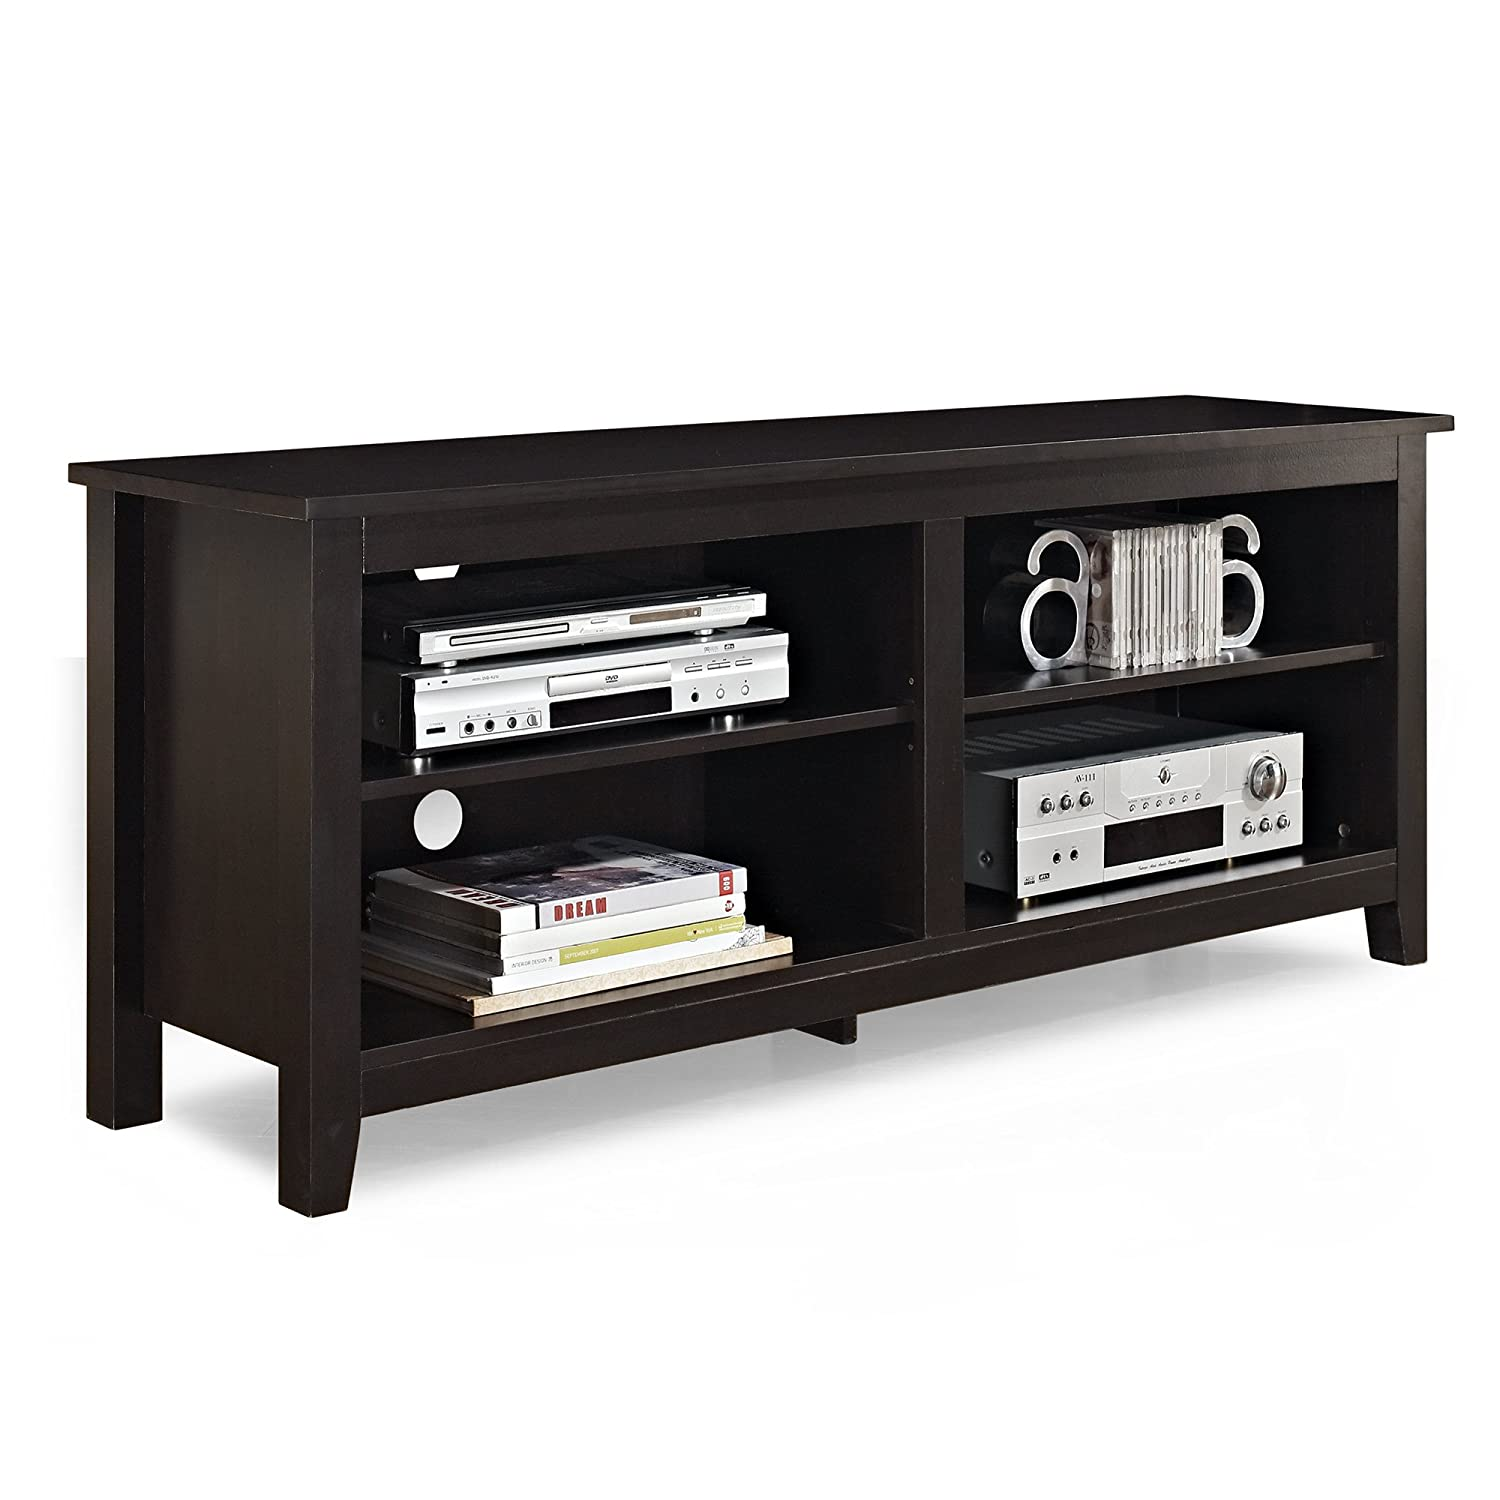 Amazoncom WE Furniture Wood TV Stand Storage Console - Furniture storage